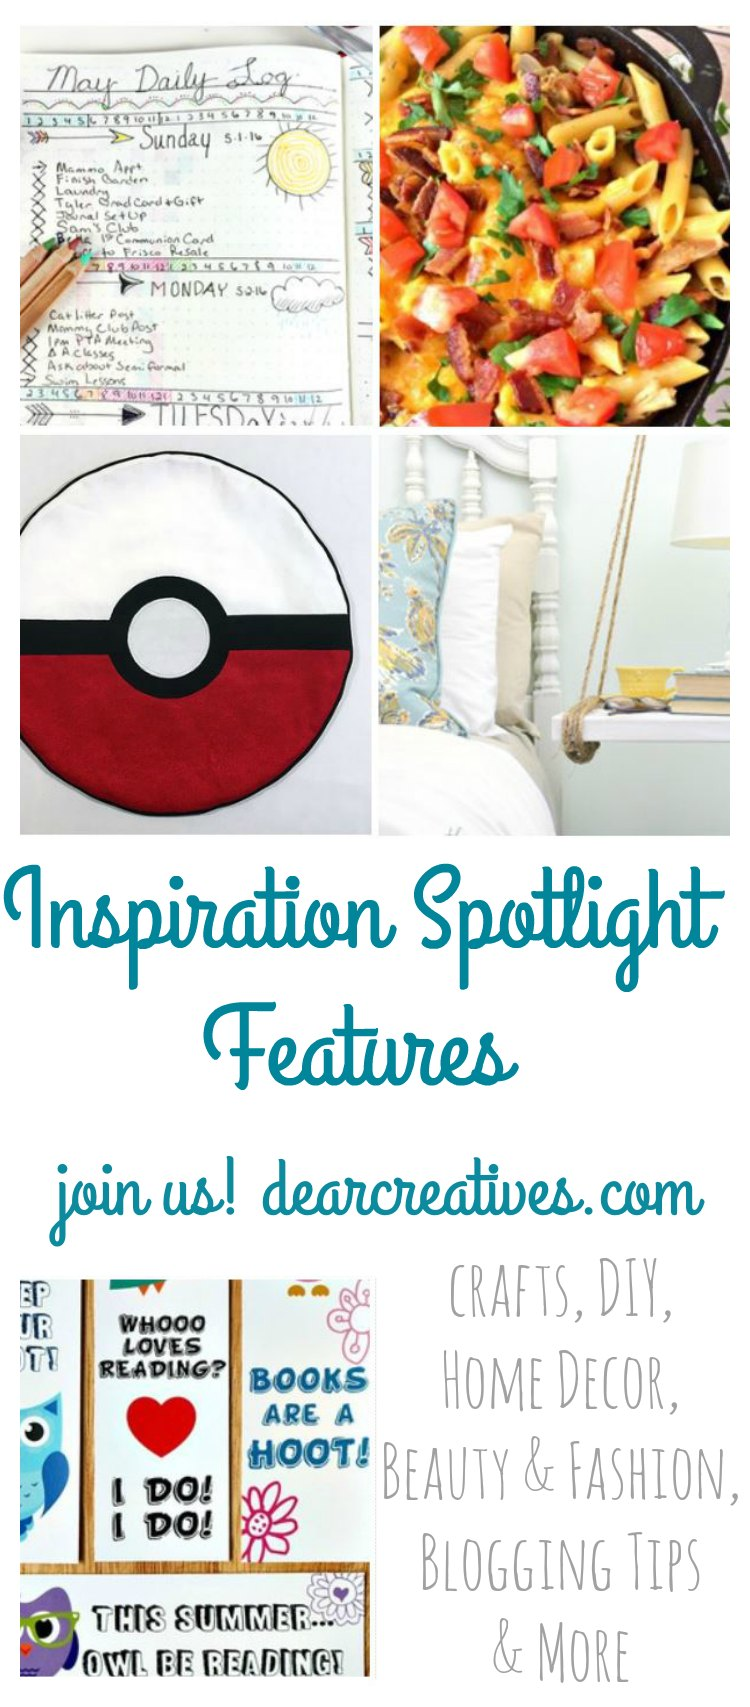 Linkup Party Inspiration Spotlight Bloggers sharing their favorite crafts, DIY, recipes and more DearCreatives.com